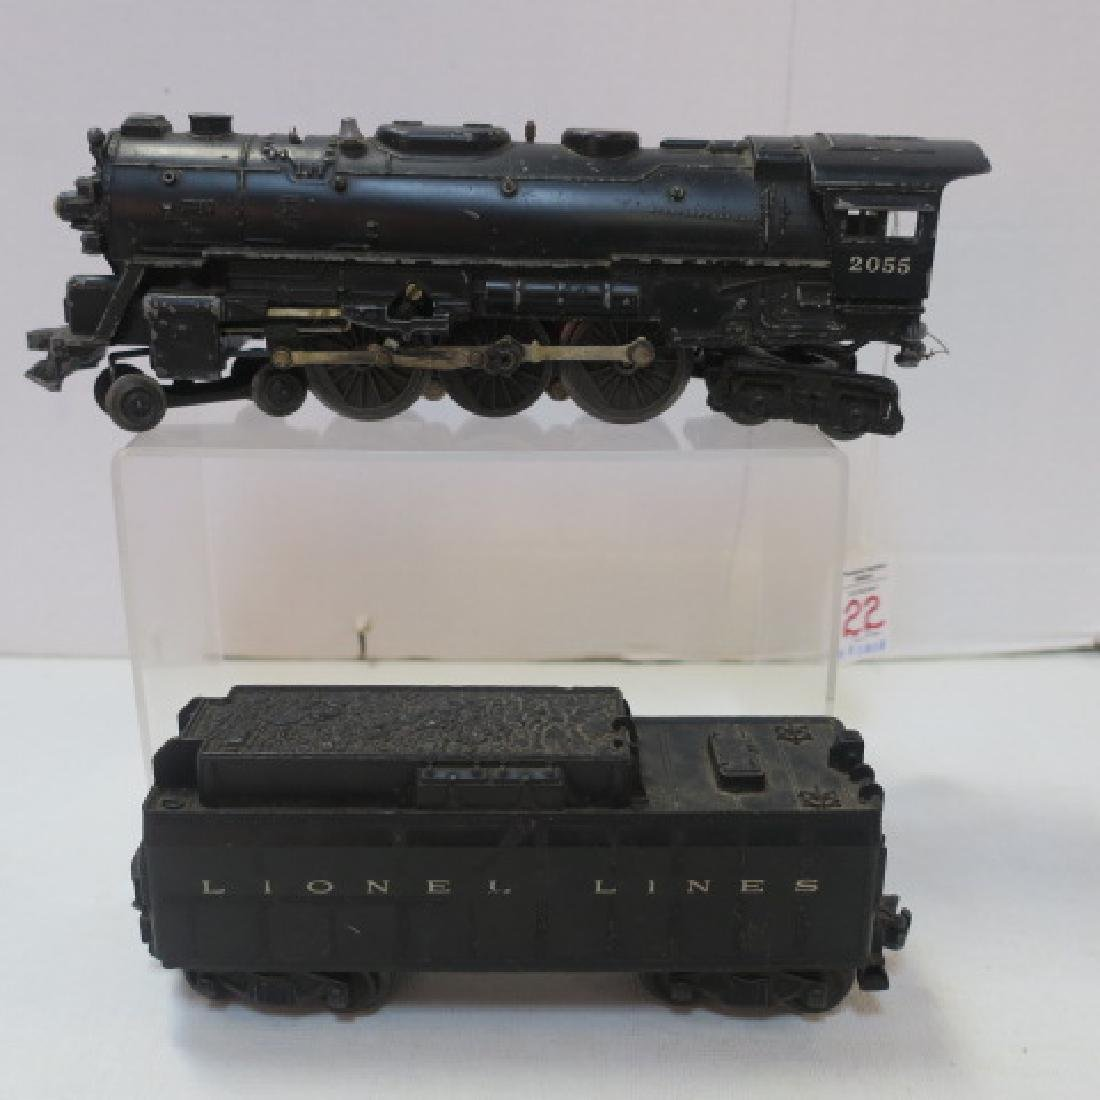 LIONEL TRAINS 2055 Hudson Style Engine and Tender